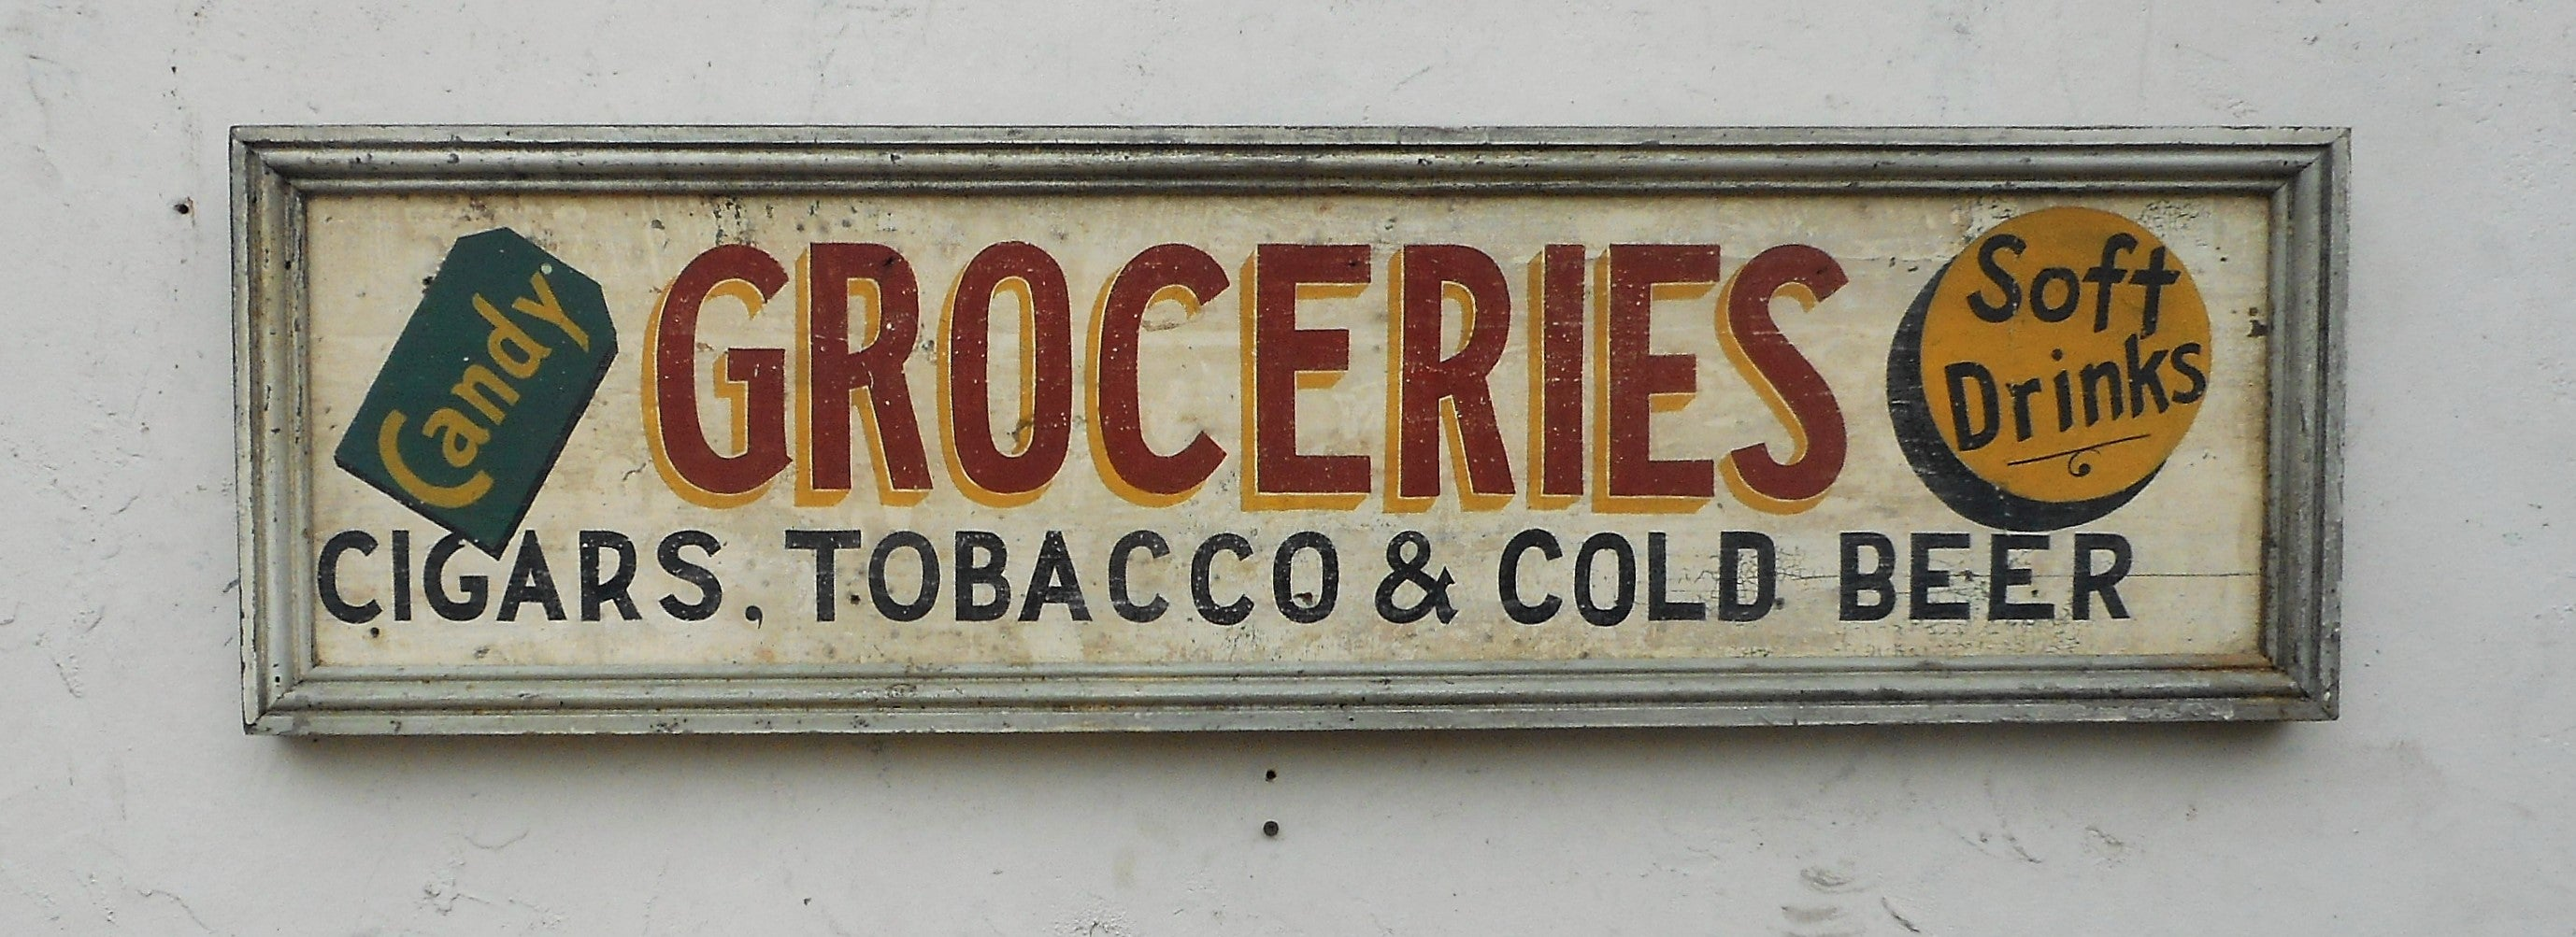 Groceries, Cigars, Tobacco & Cold Beer